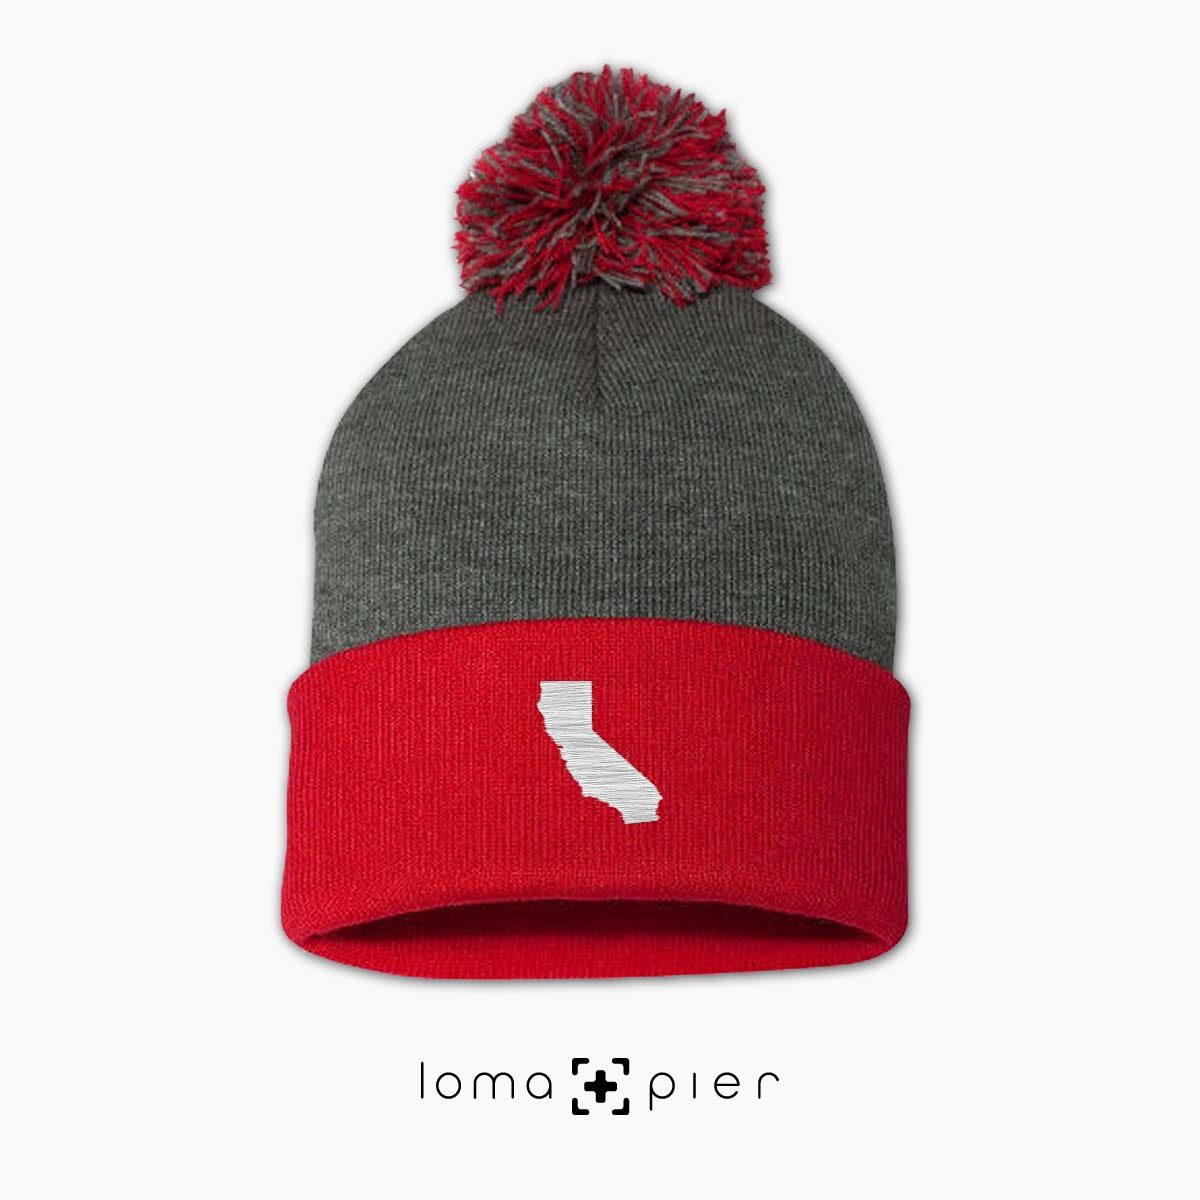 CALIFORNIA silhouette icon embroidered on a grey red pom pom beanie by loma+pier hat store